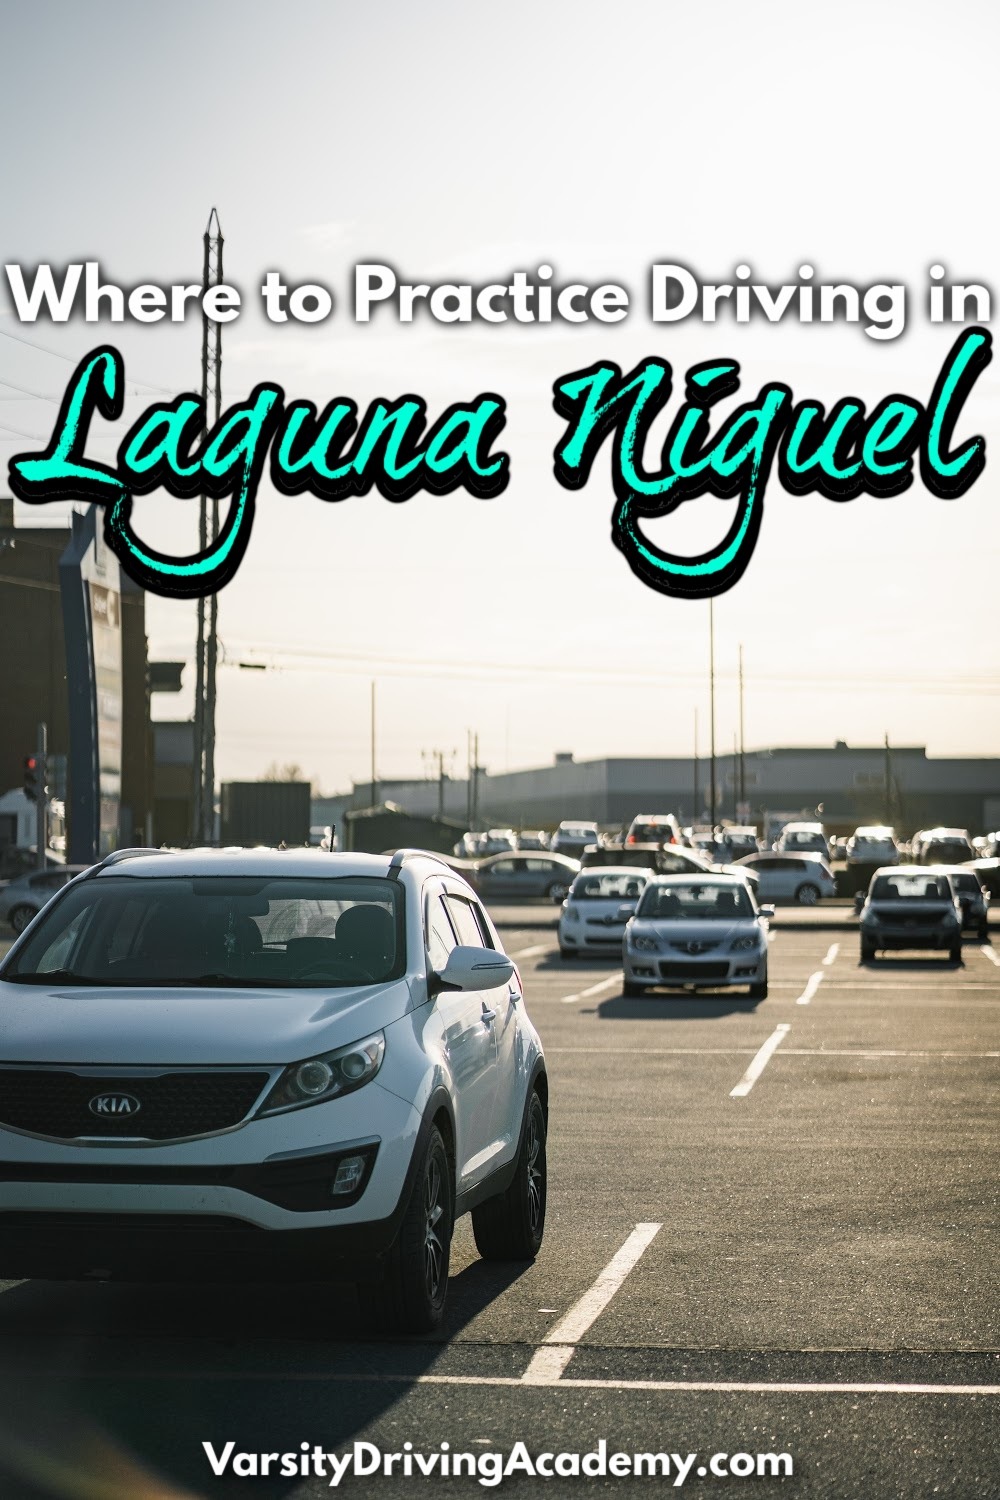 Knowing where to practice driving in Laguna Niguel is very important for student drivers who want to pass their driving test.